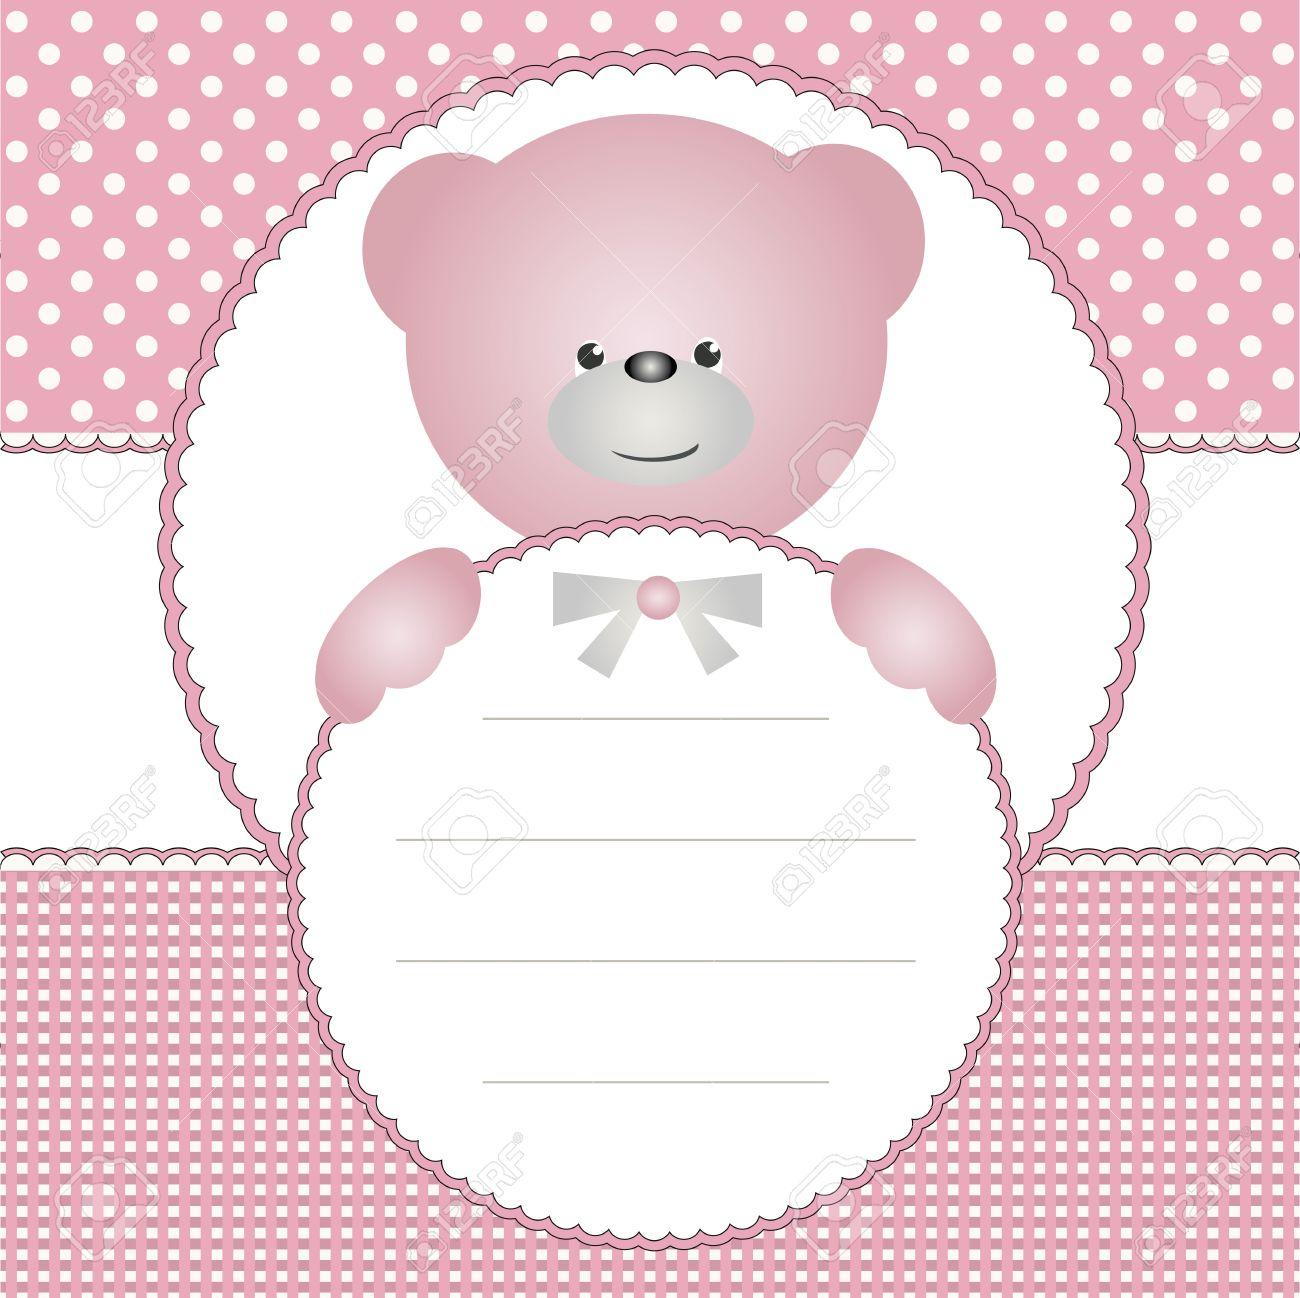 Babies invitation card or name tag with teddy bear royalty free babies invitation card or name tag with teddy bear stock vector 15495556 stopboris Images